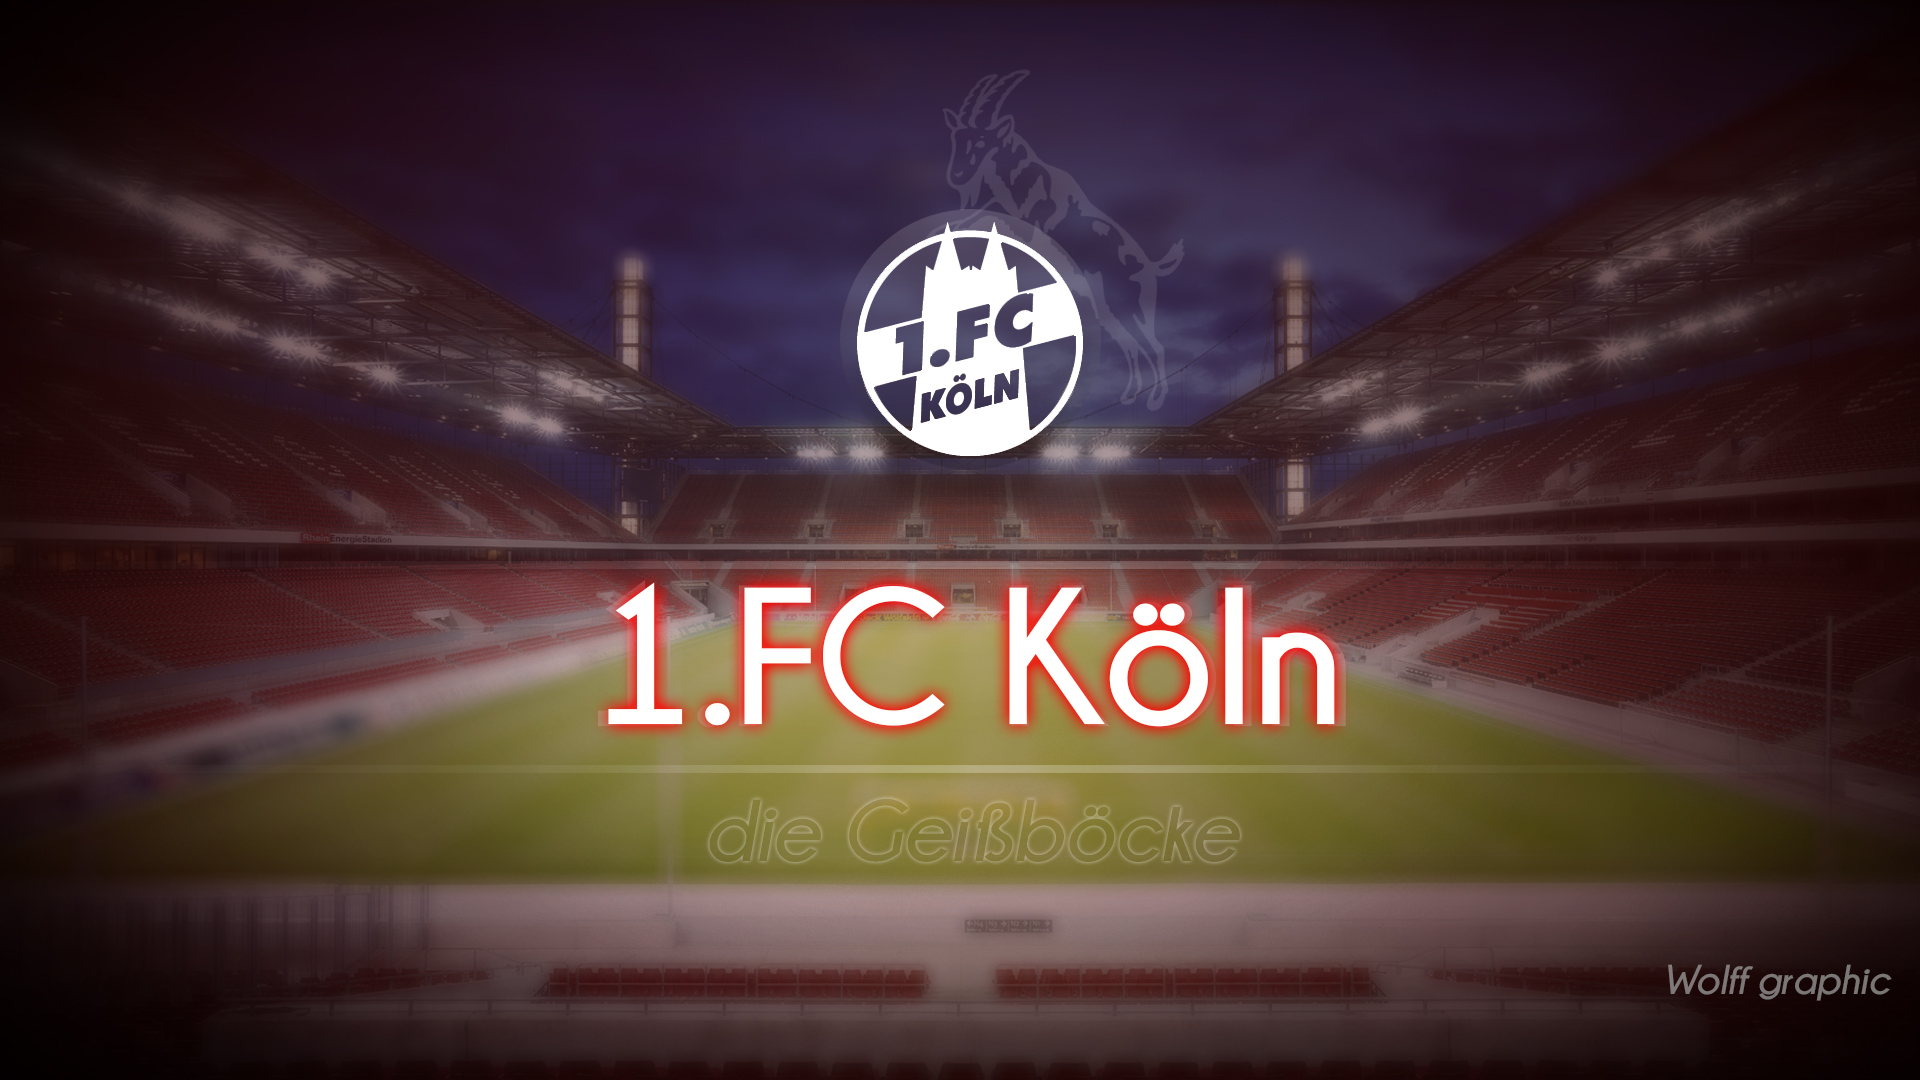 1 fc koln download: